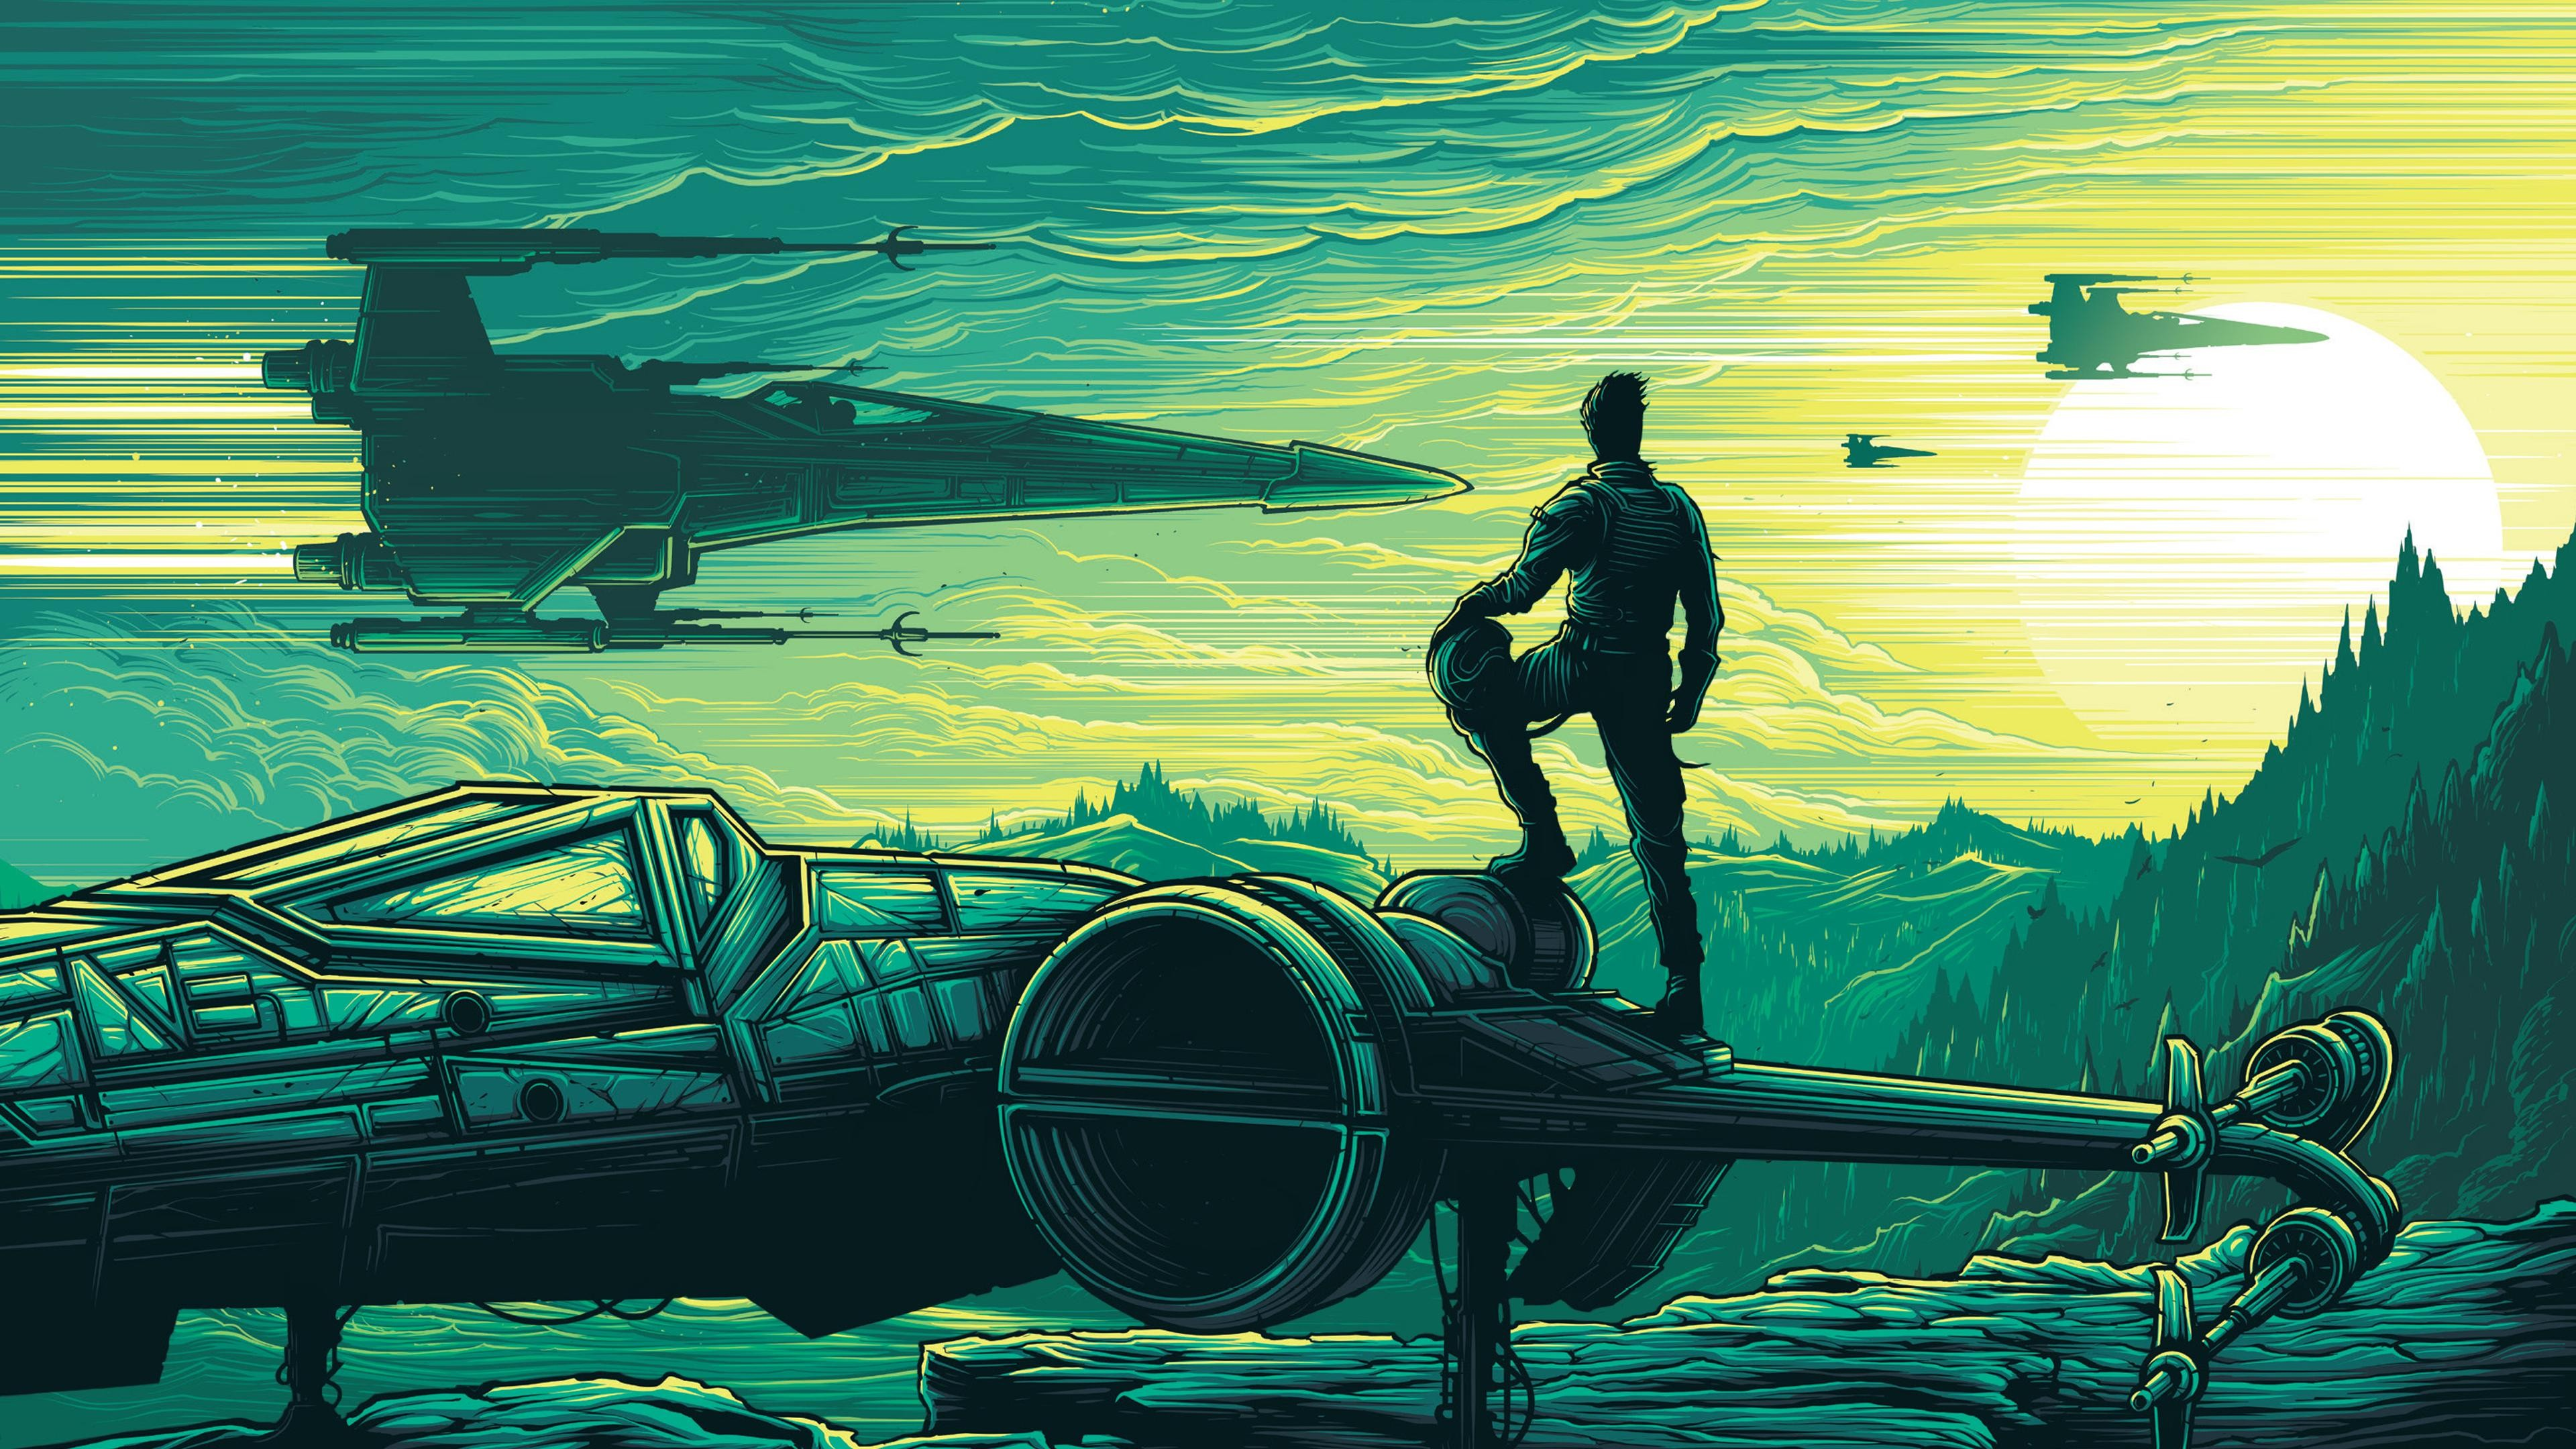 Dan Mumford Star Wars The Force Awakens 4k Hd Movies 4k Wallpapers Images Backgrounds Photos And Pictures